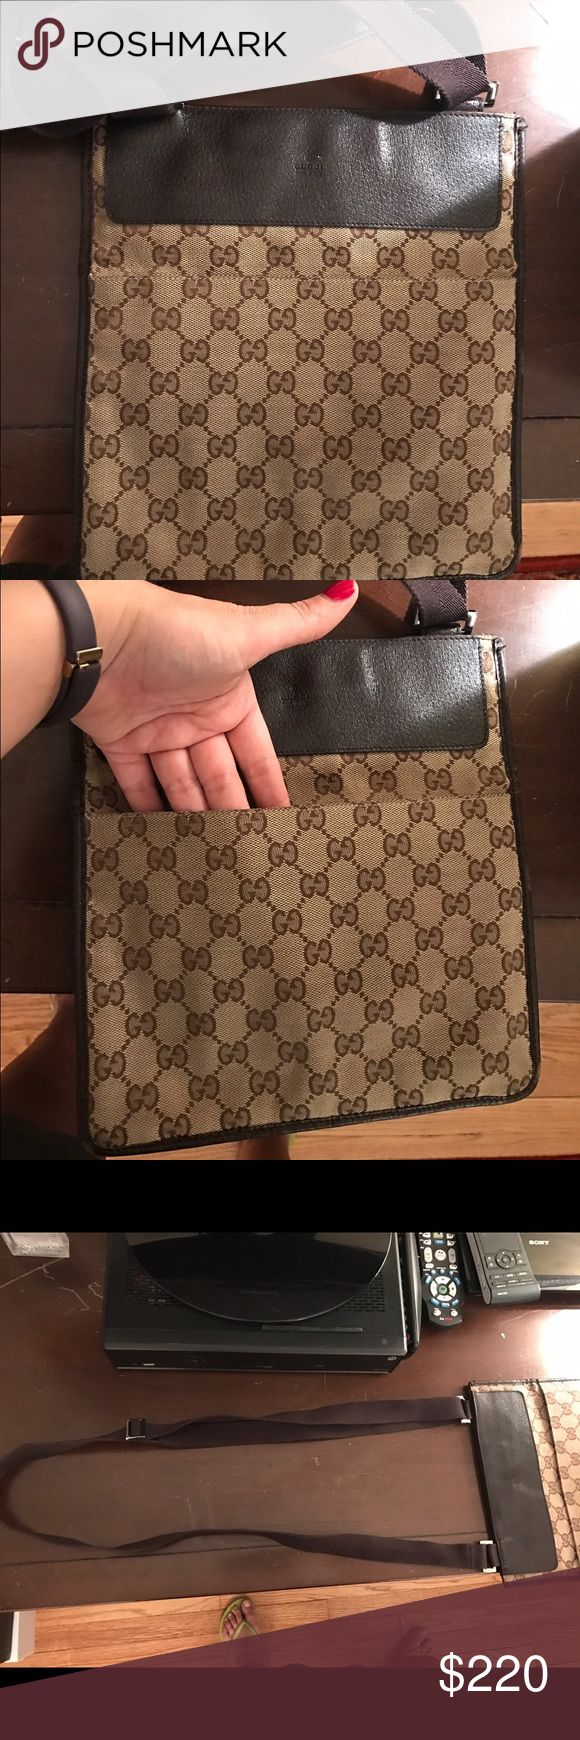 Authentic Gucci Messenger bag Preowned but in excellent condition. Adjustable strap. Gucci Bags Crossbody Bags